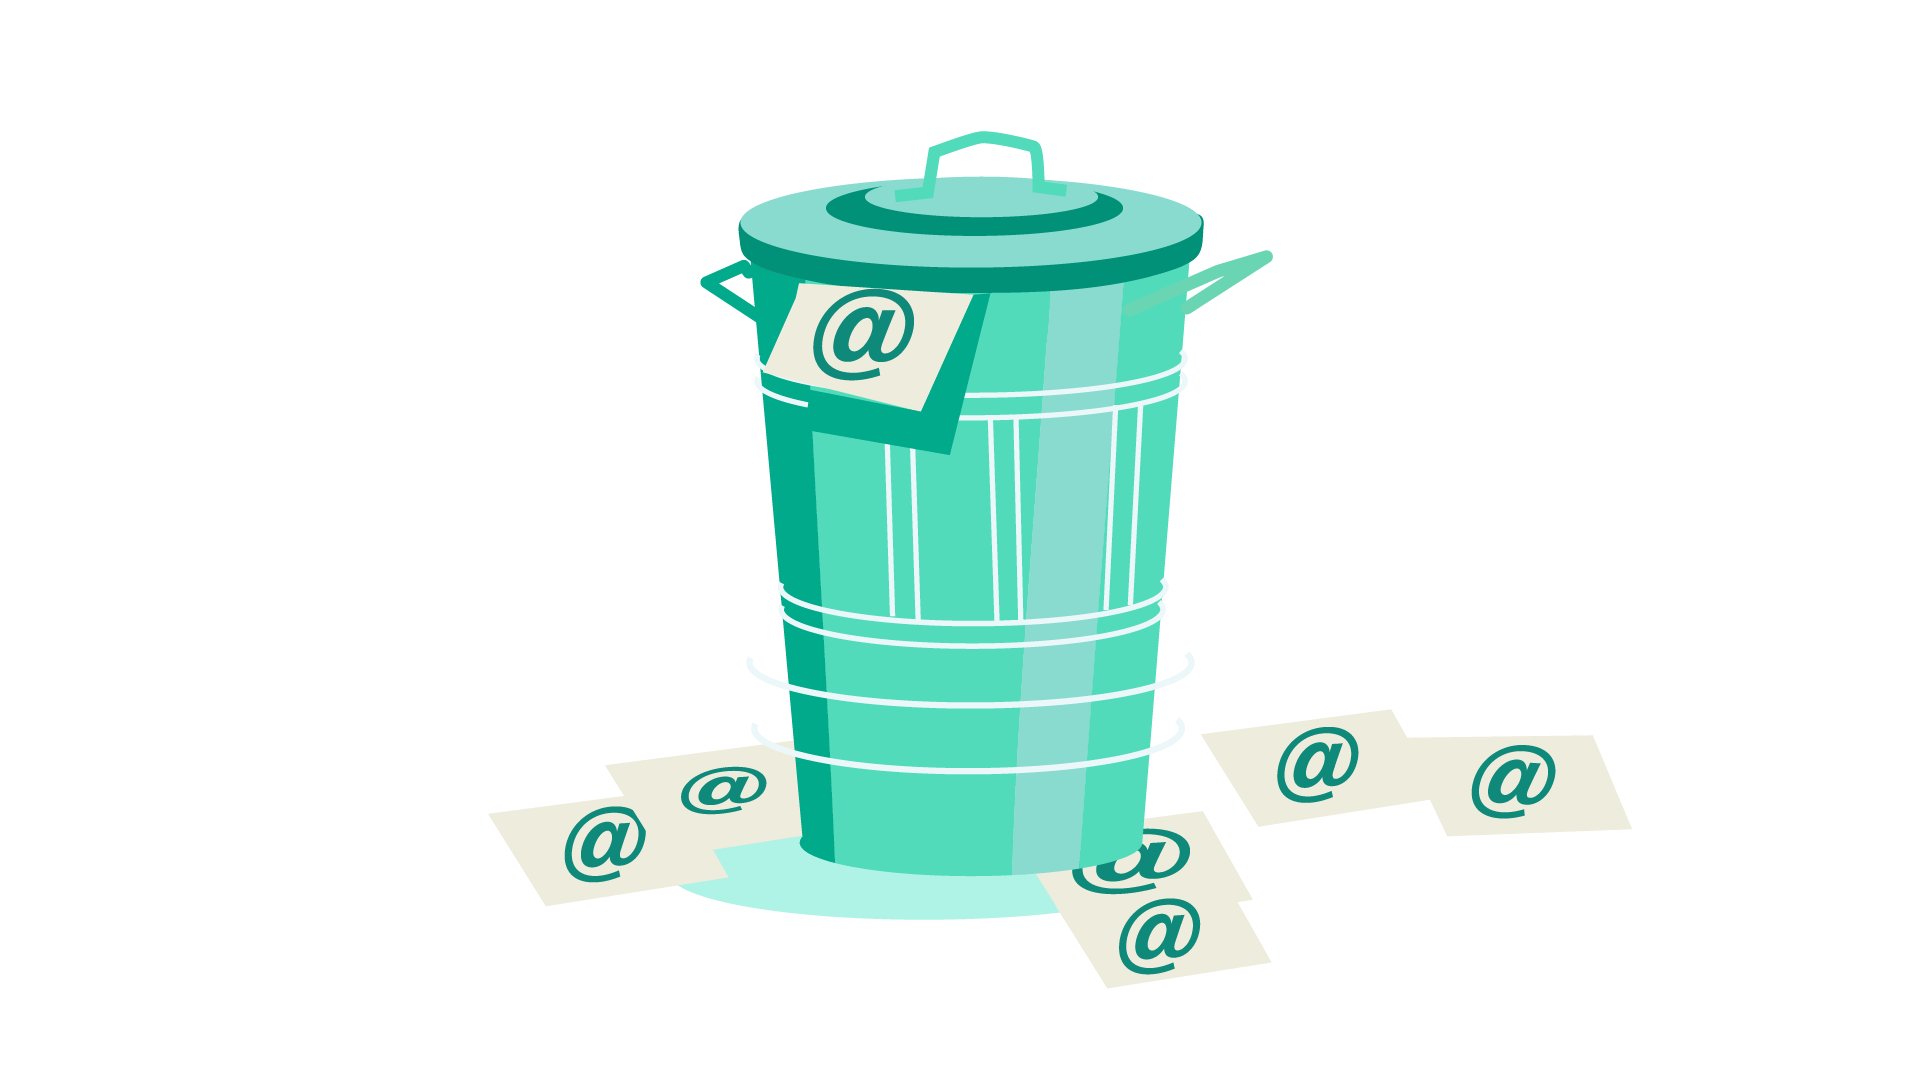 Trash can full of emails